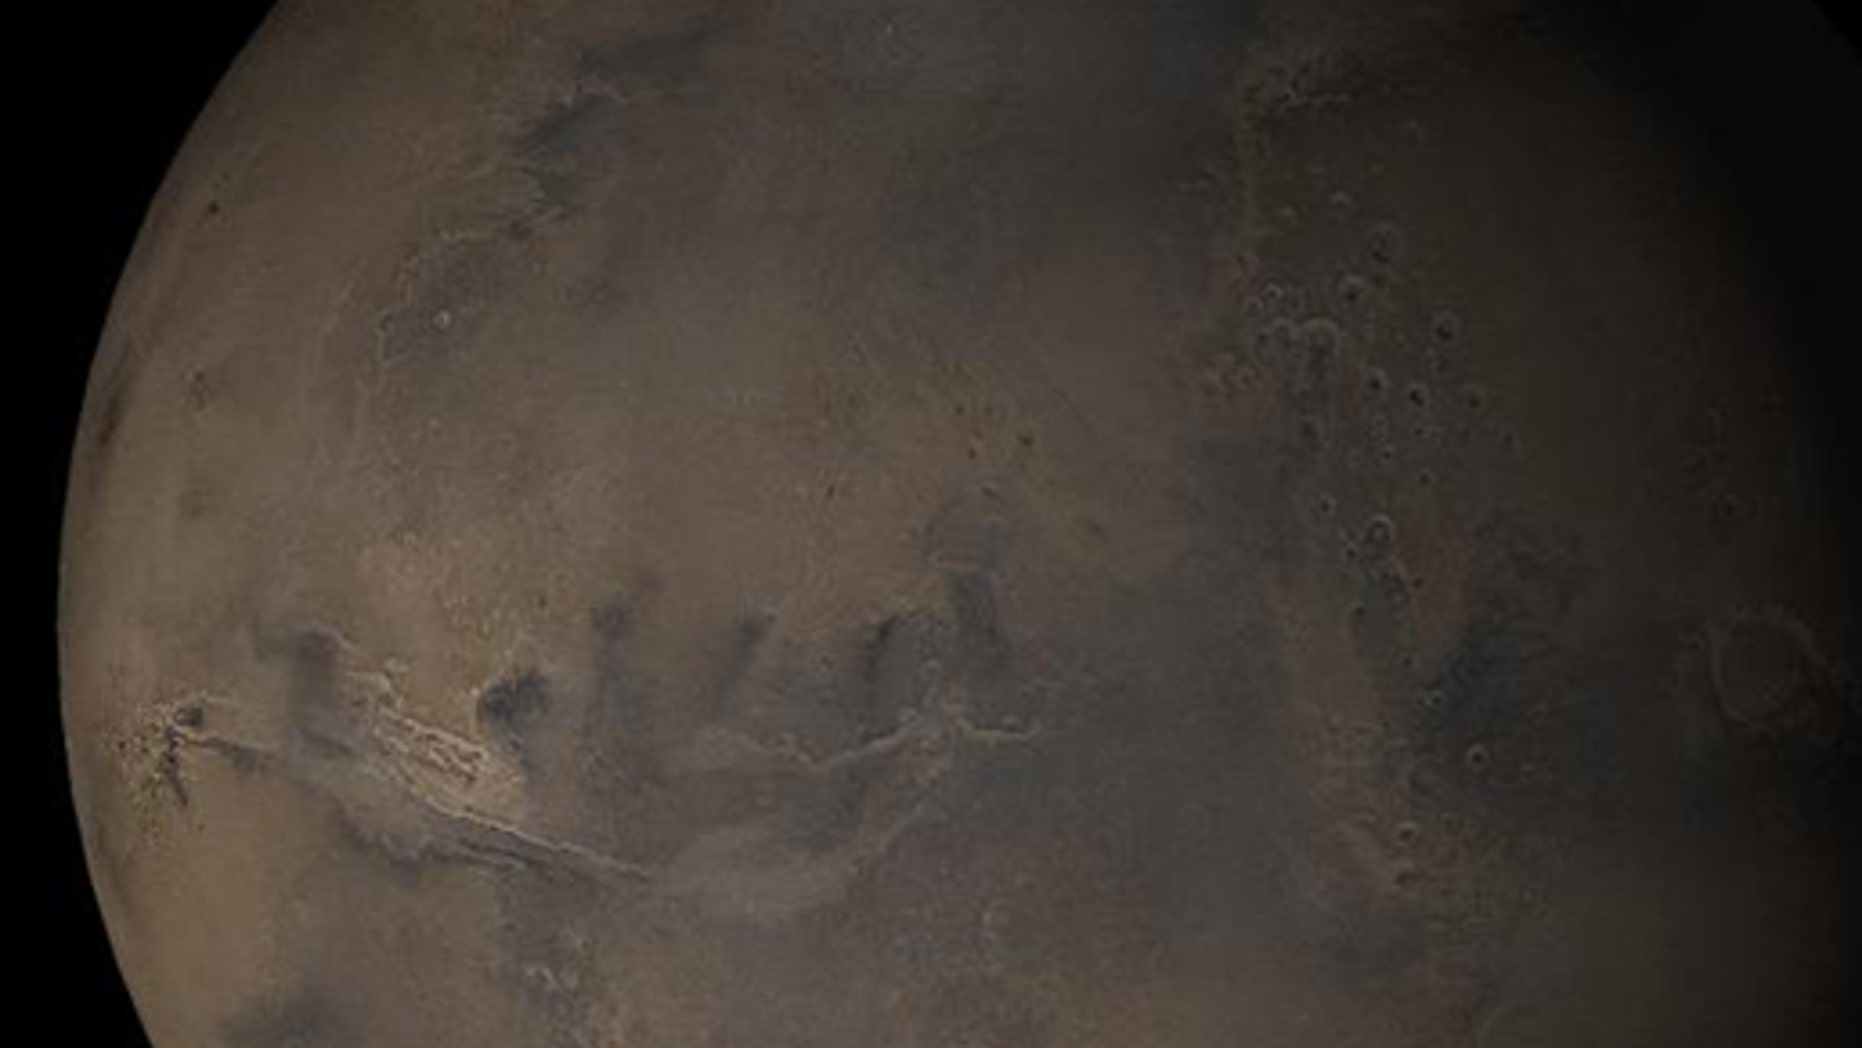 Some scientist from NASA are saying the bugdet will not allow for future missions to Mars.